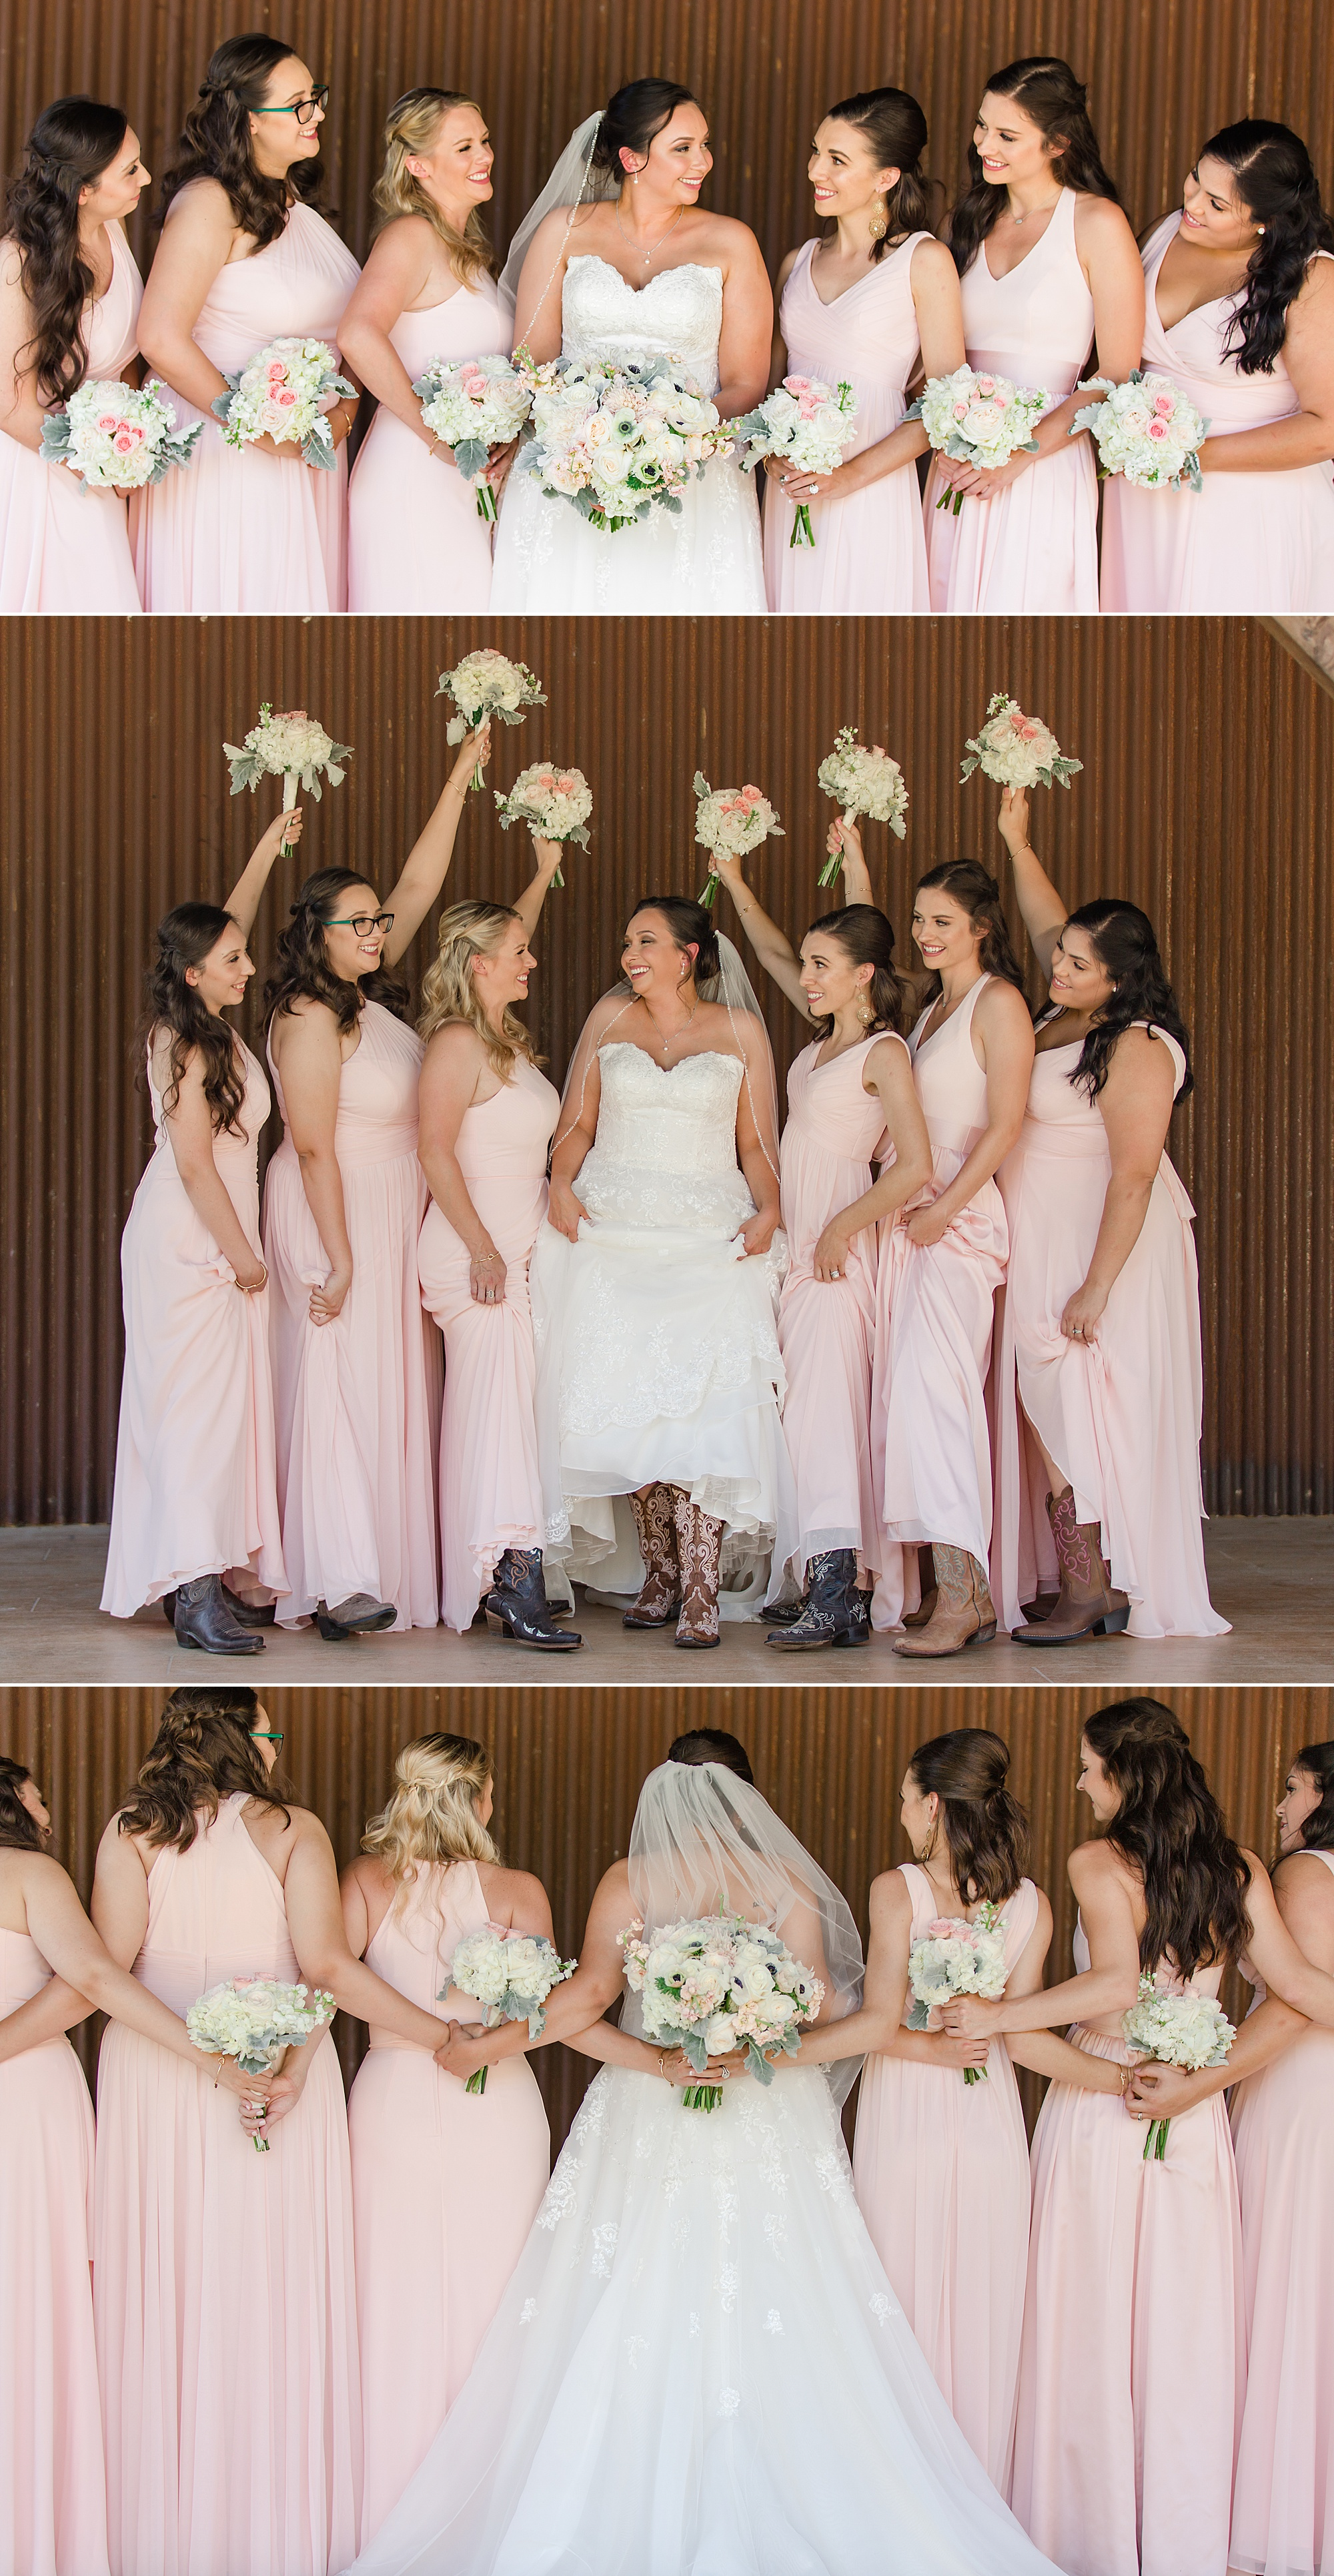 Wedding-Photographer-Bulverde-Texas-Western-Sky-Event-Venue-Carly-Barton-Photography_0015.jpg